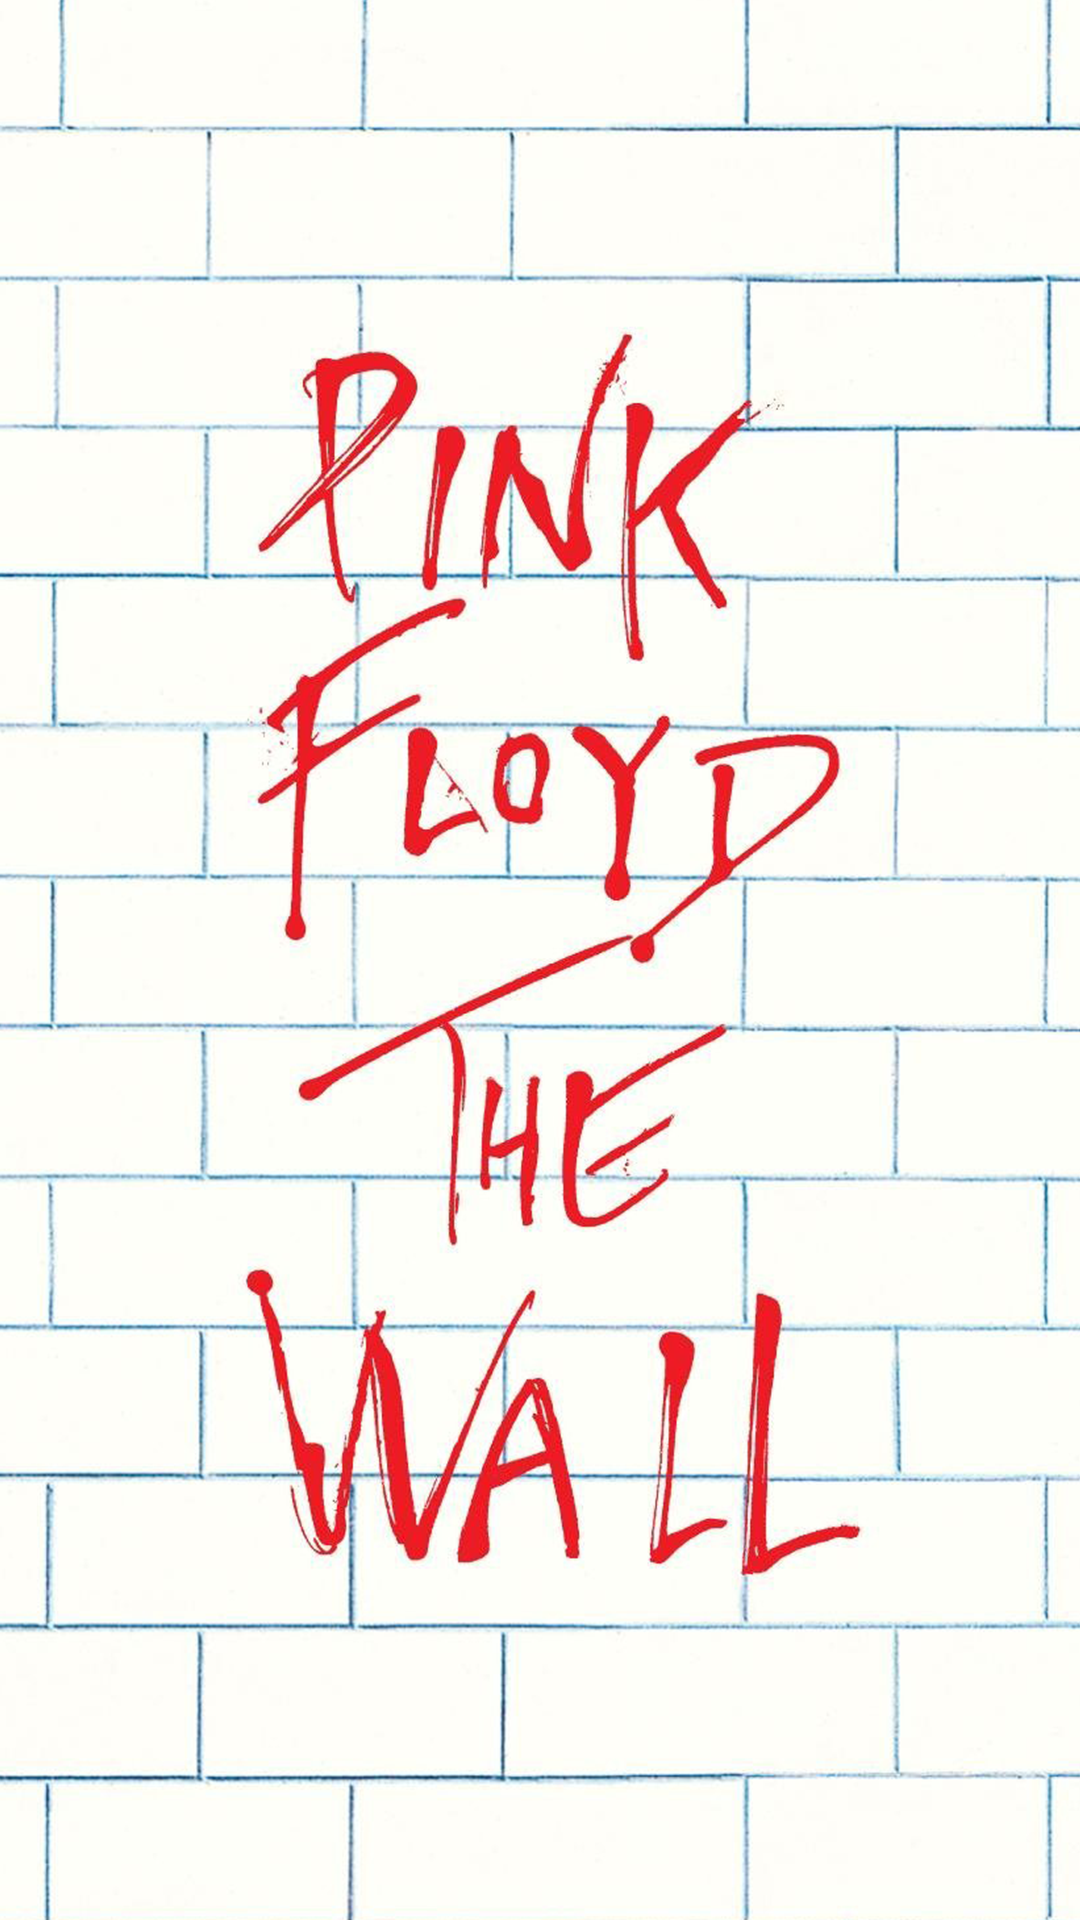 Free Hd Pink Floyd The Wall Iphone Wallpaper For 0208